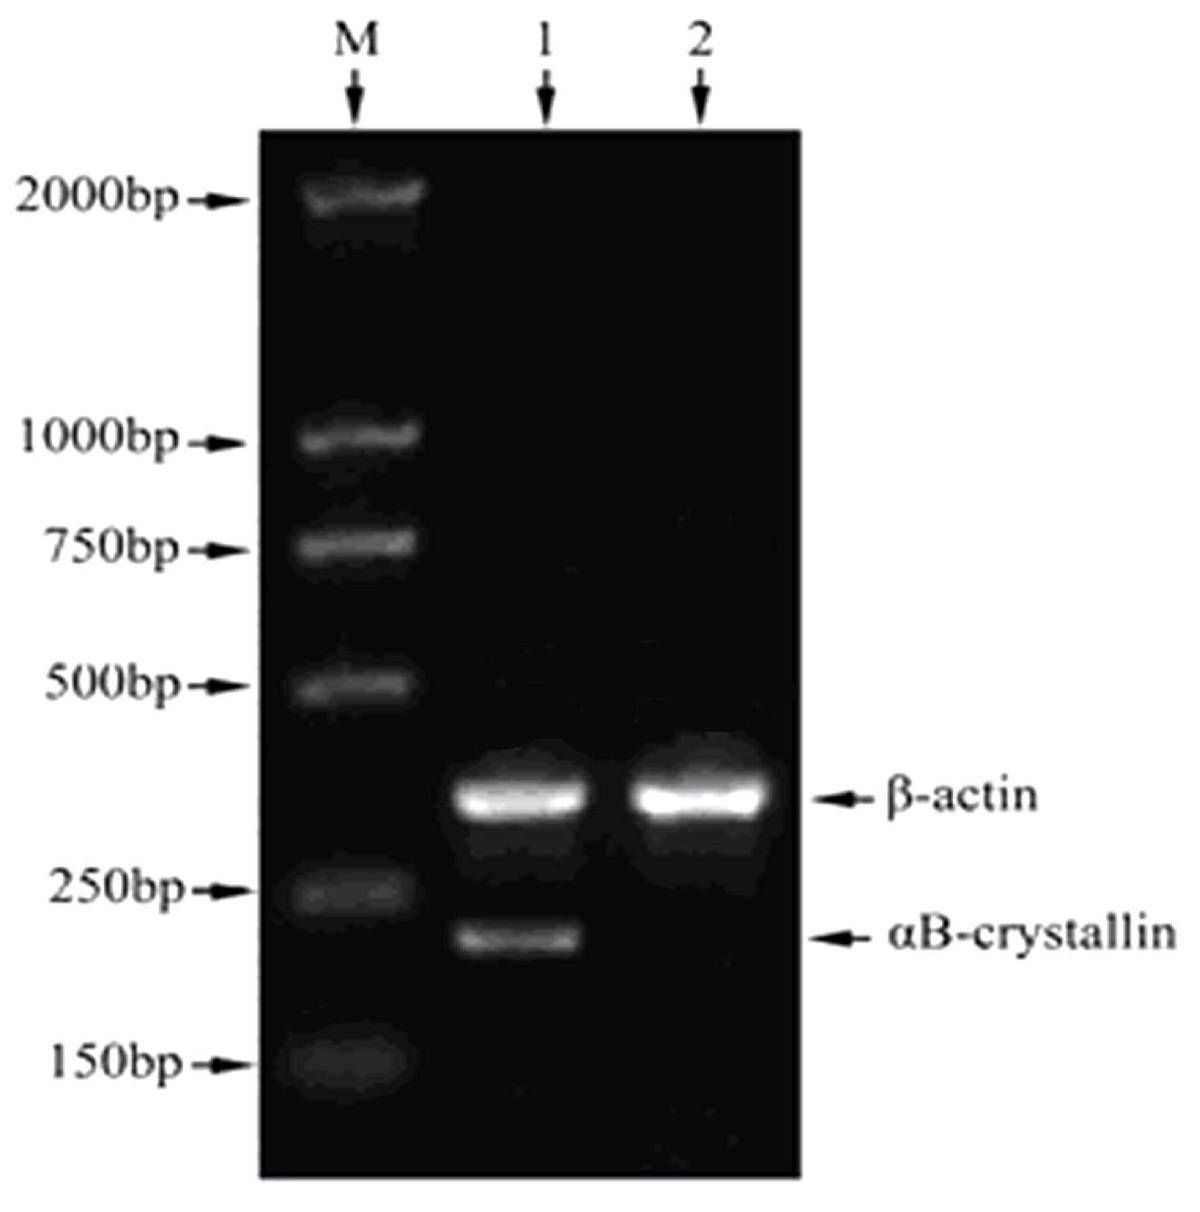 http://static-content.springer.com/image/art%3A10.1186%2F1756-9966-31-101/MediaObjects/13046_2012_Article_637_Fig1_HTML.jpg